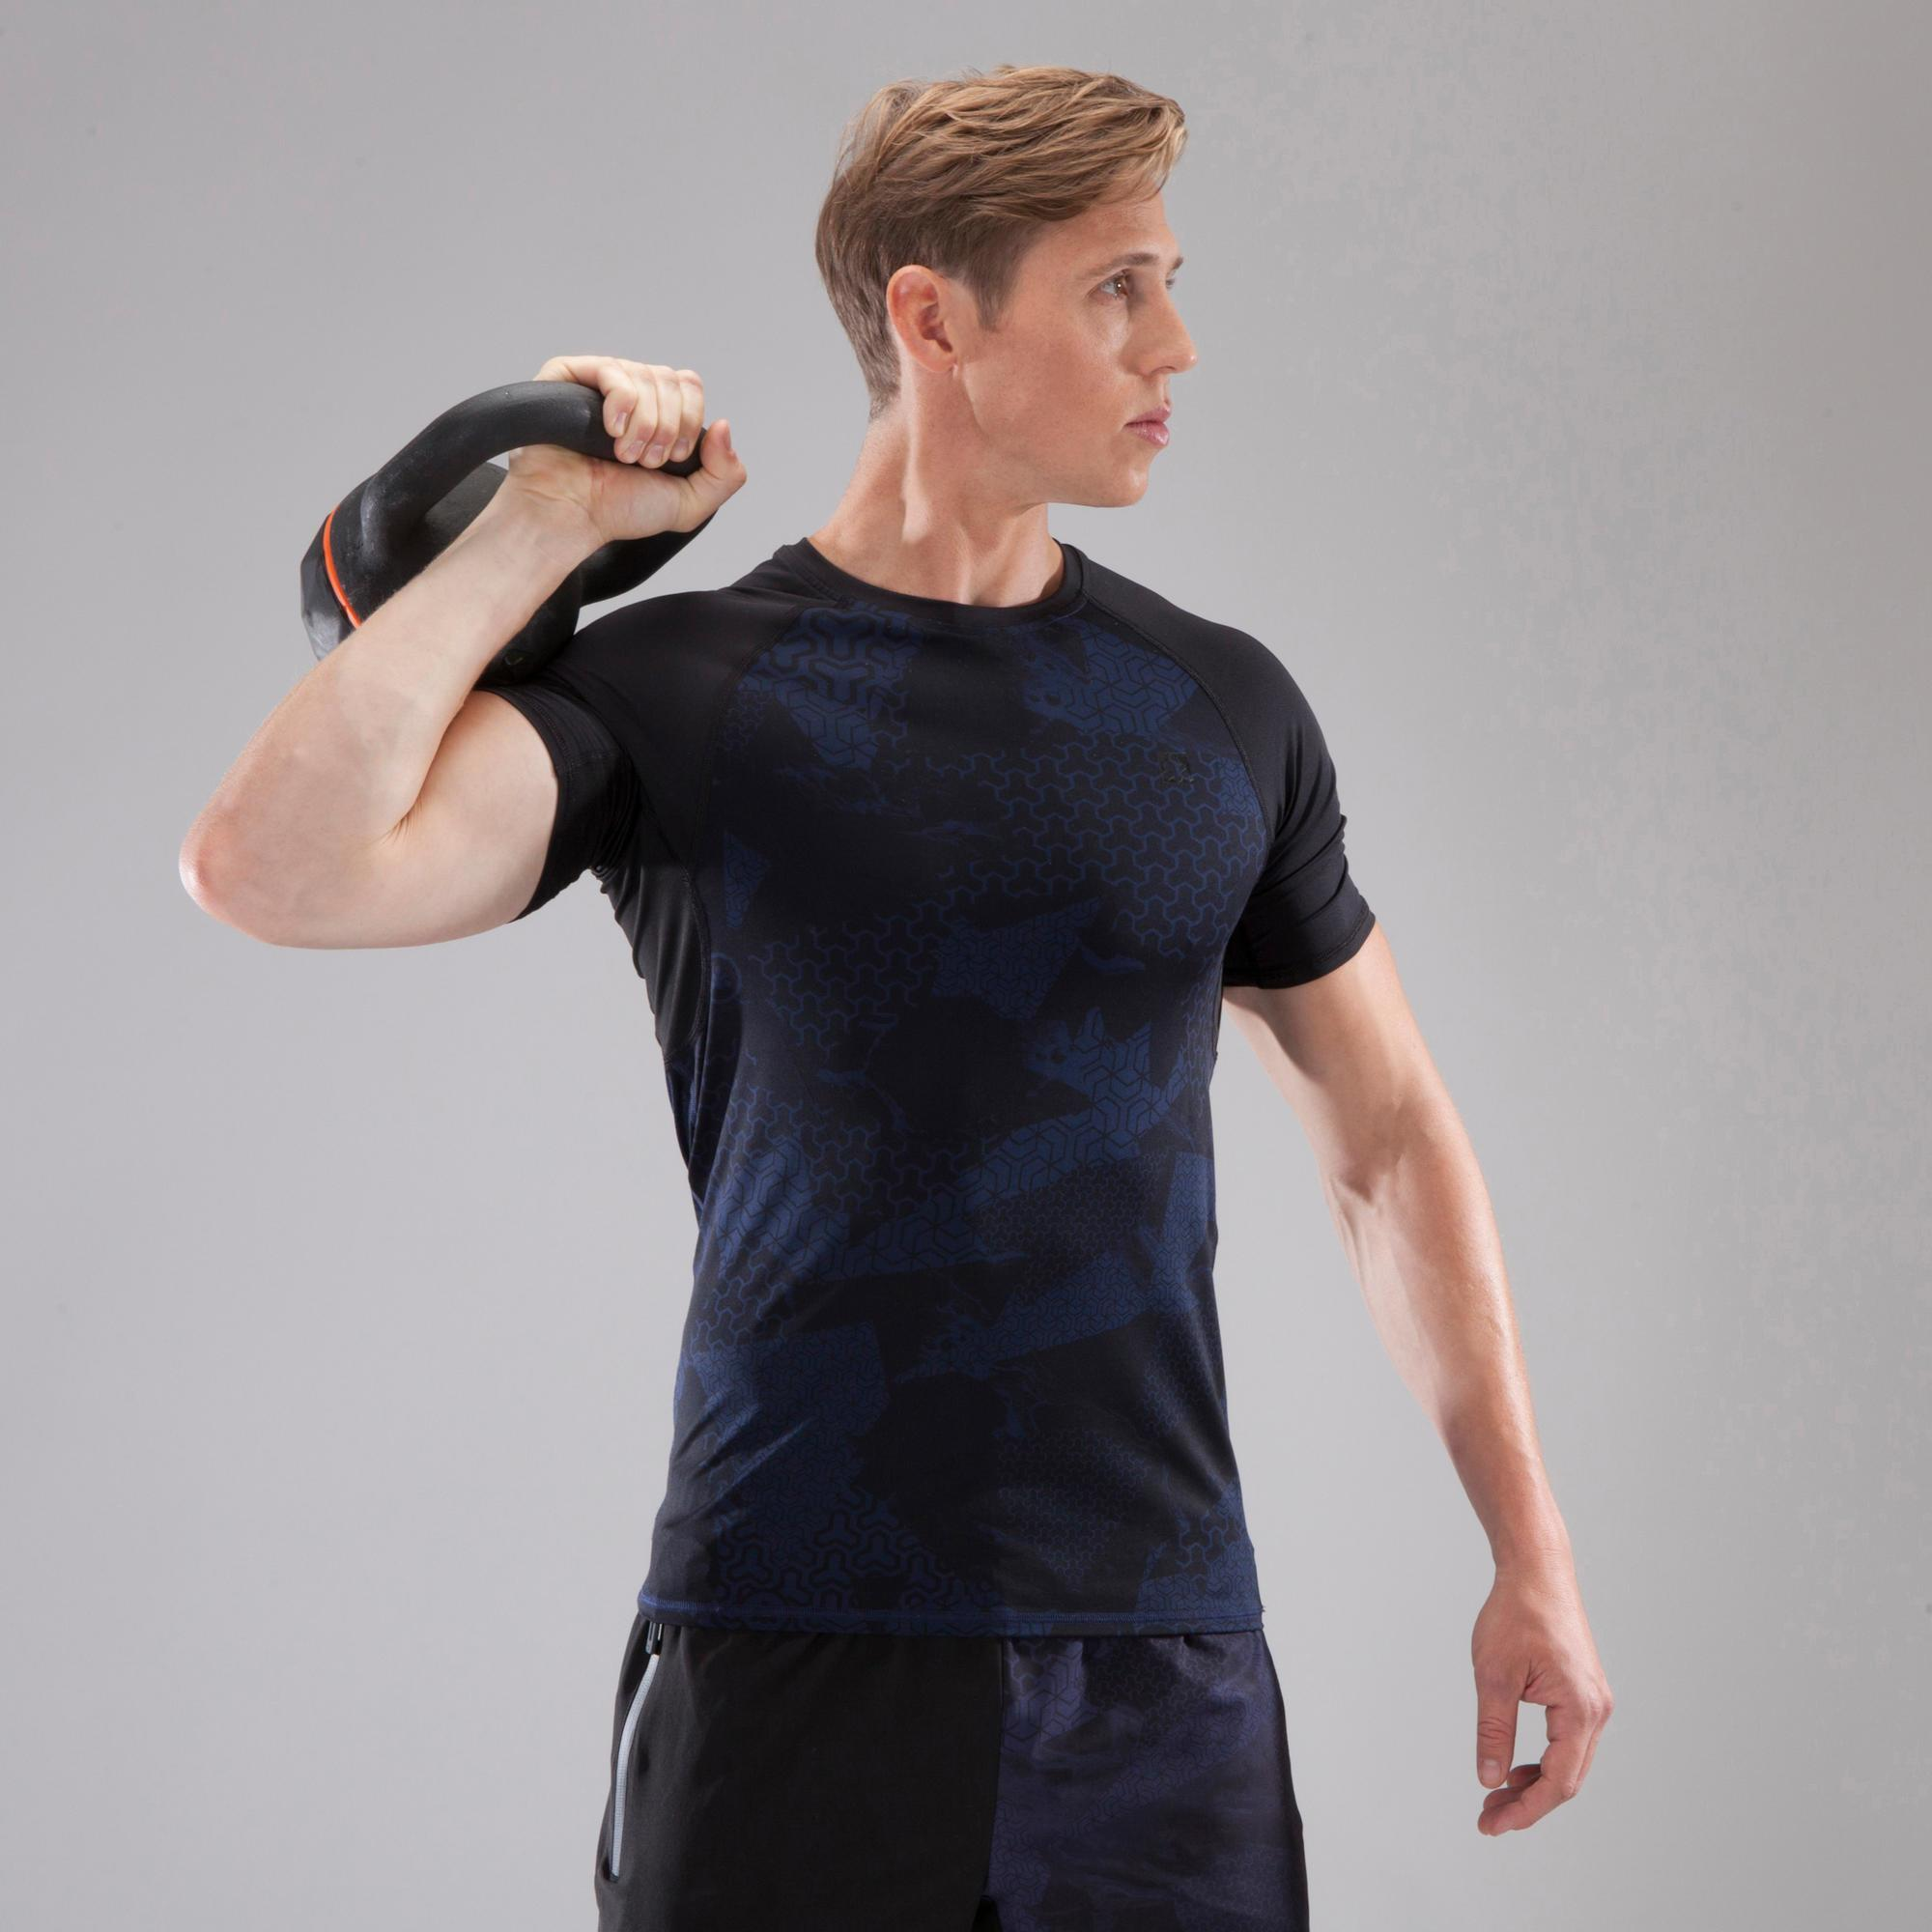 Compression Homme T Homme Musculation Shirt T Shirt Musculation Compression Yb7I6gvfym